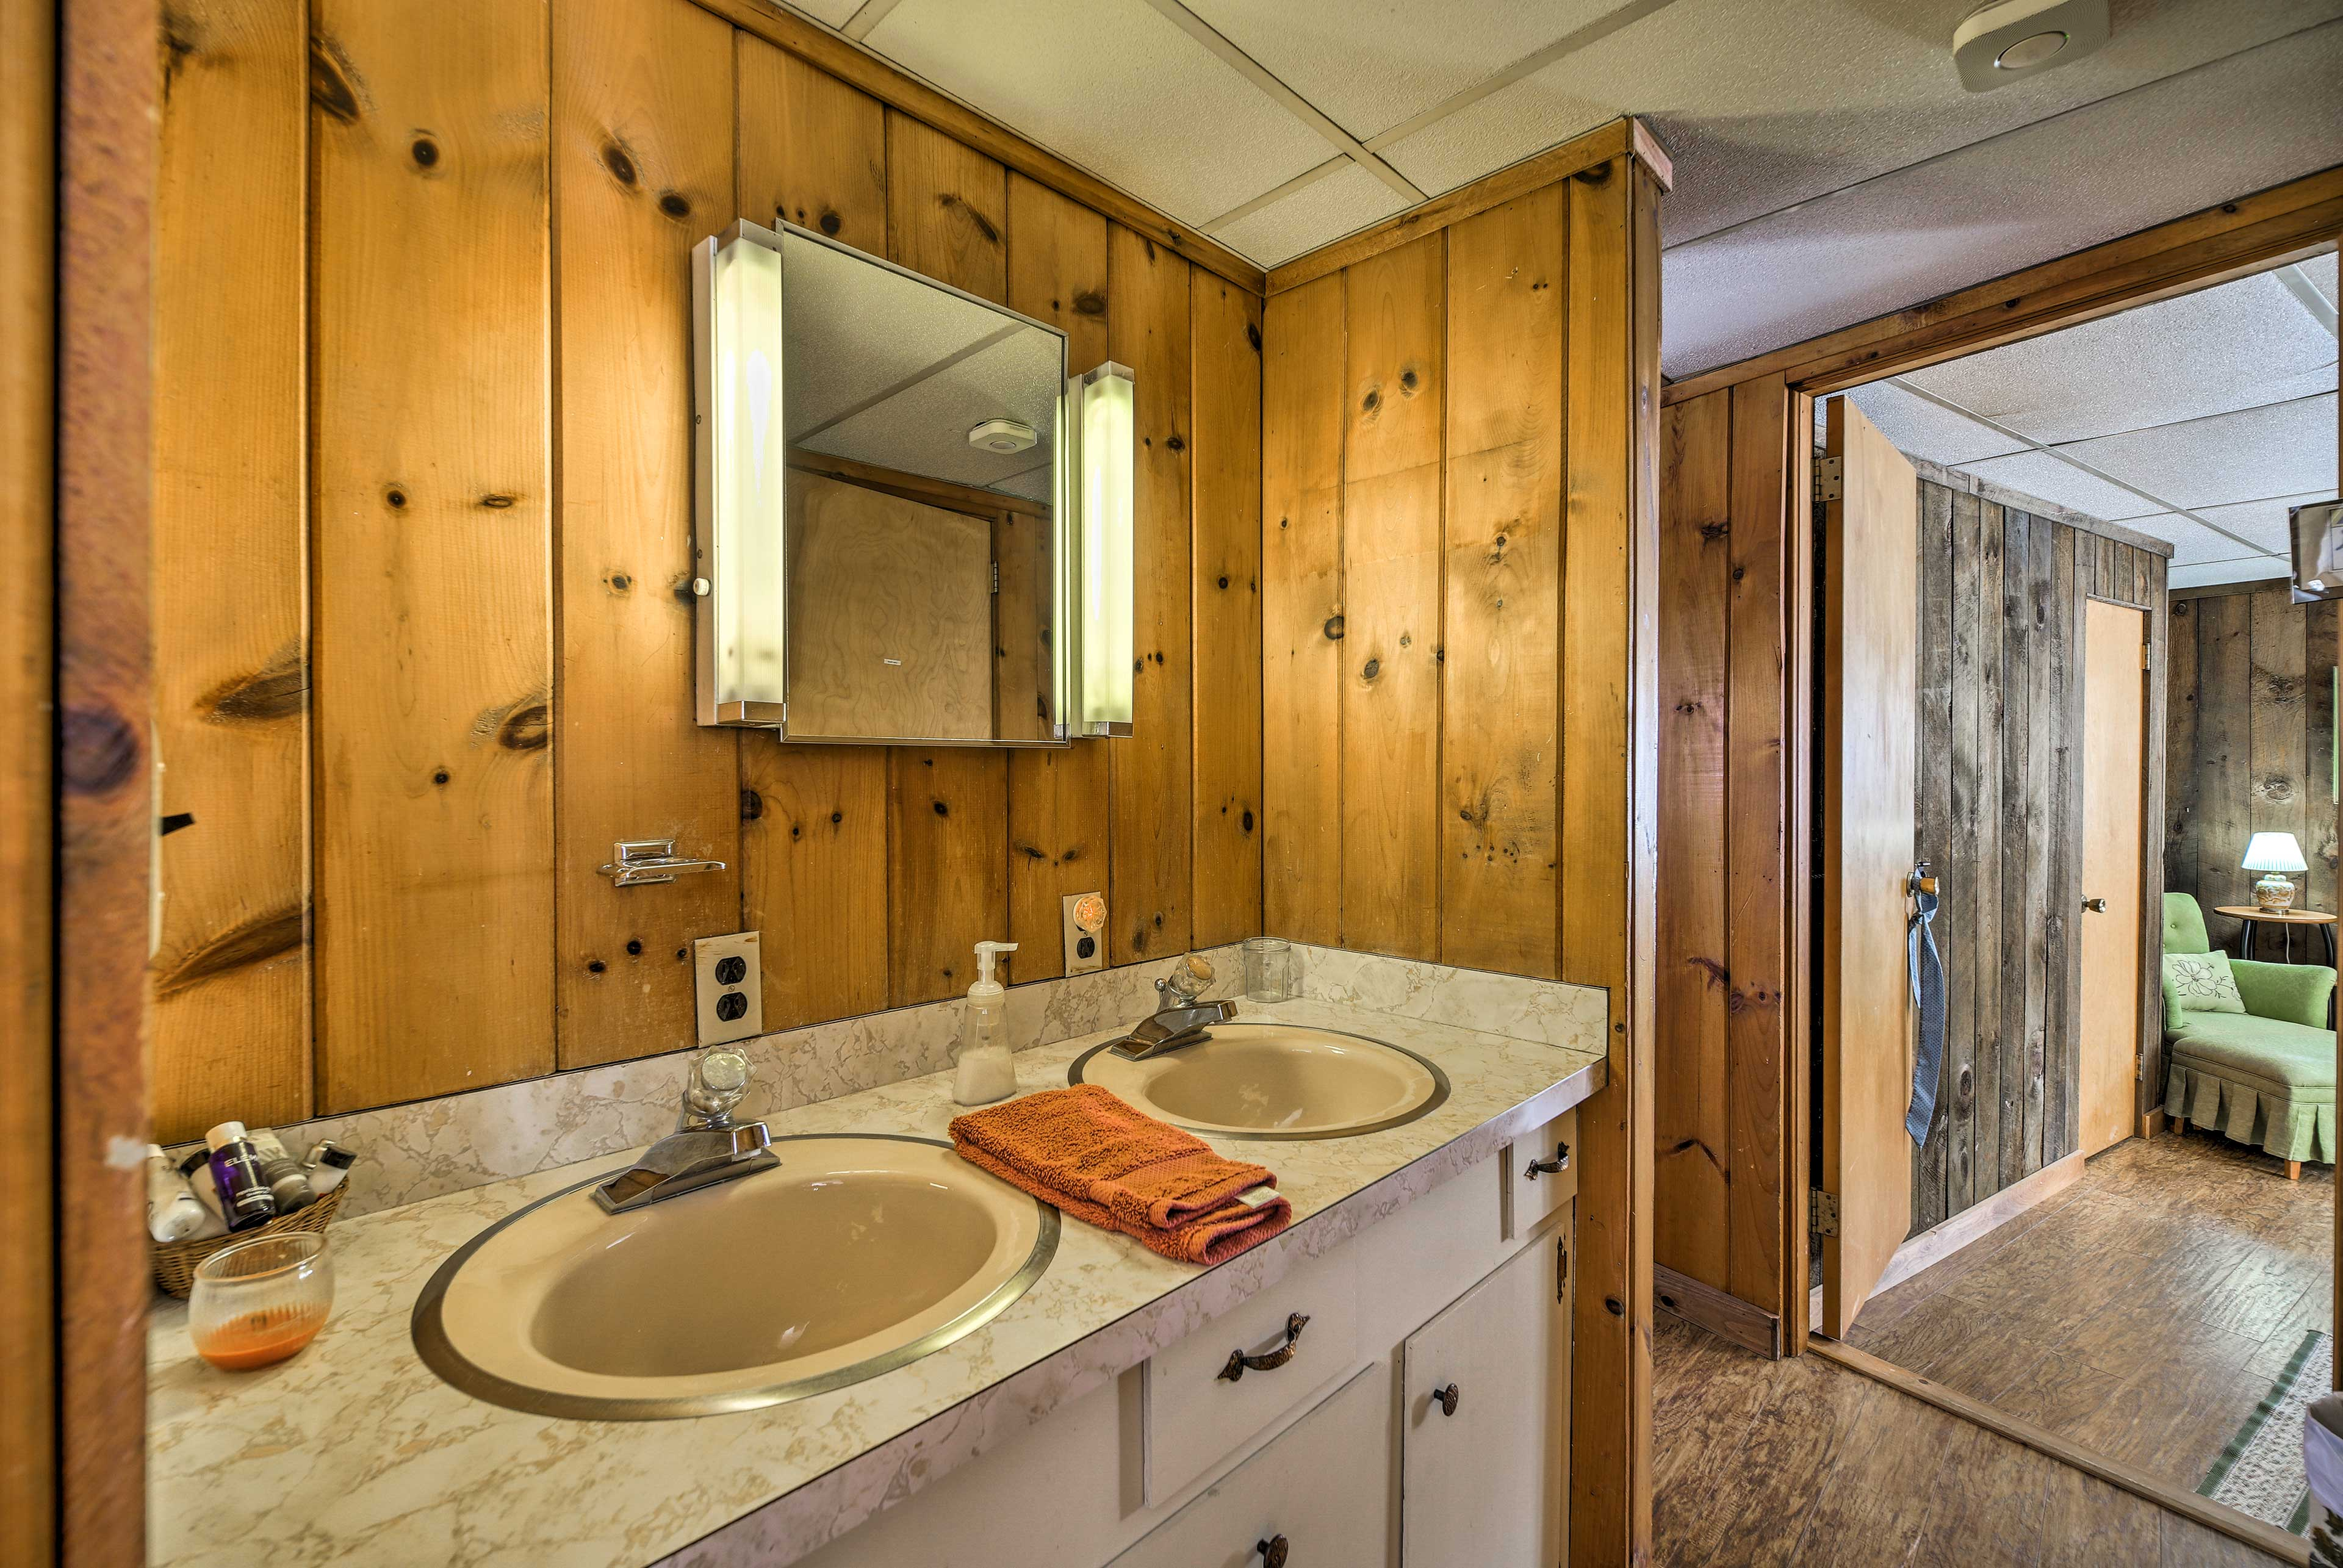 You won't have to fight over the sink thanks to this large vanity.